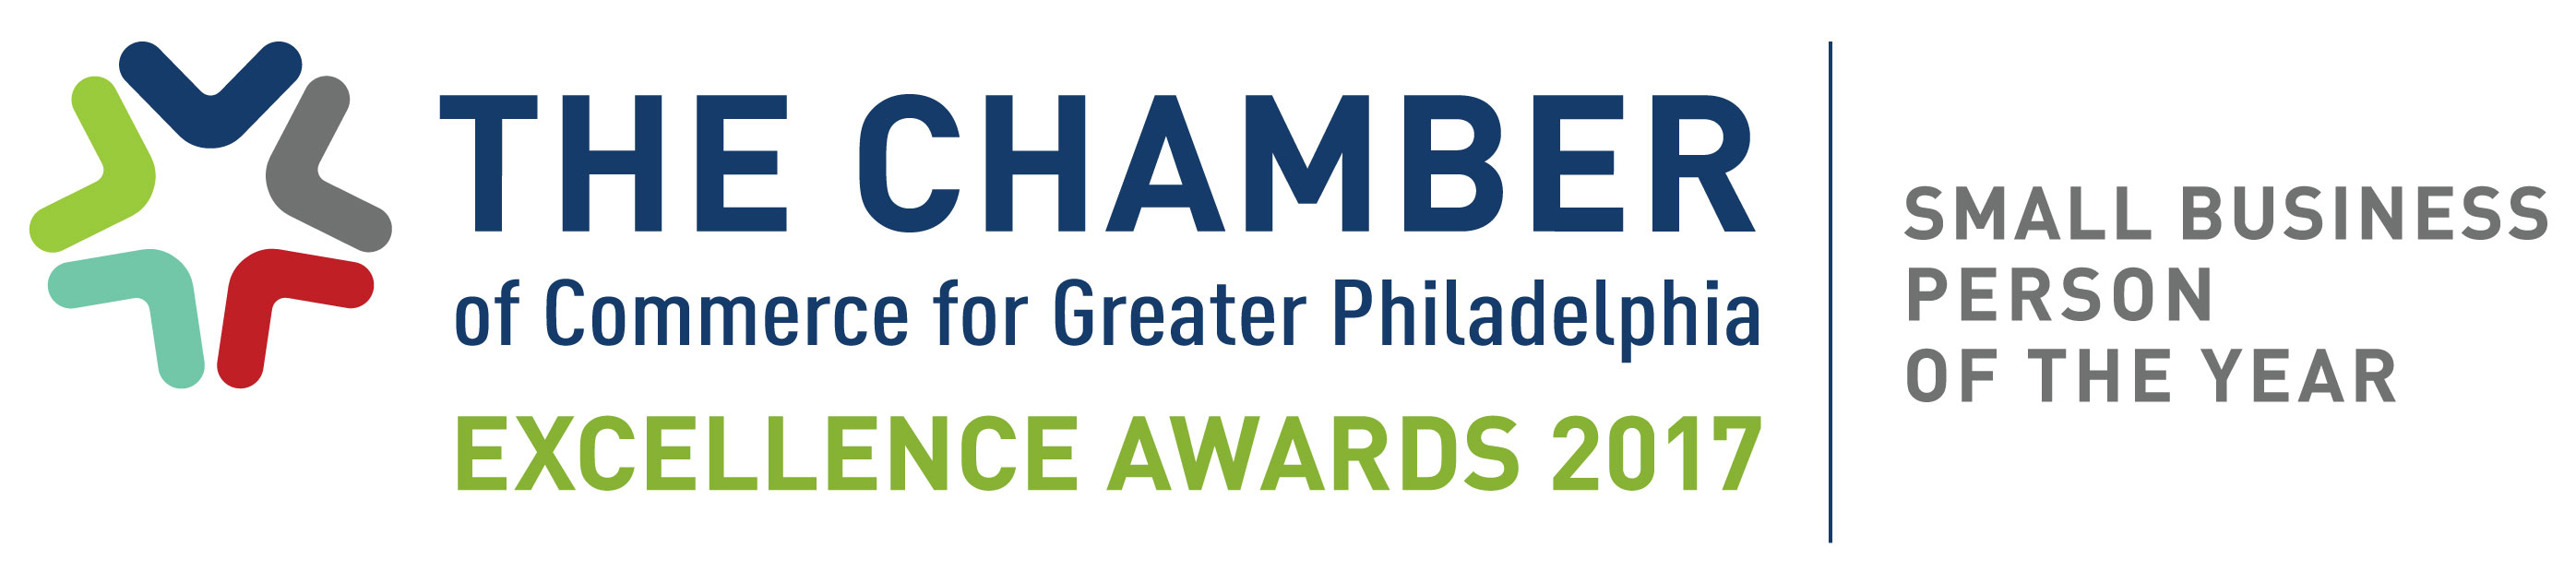 Greater Philadelphia Chamber of Commerce Small Business Person of the Year Award